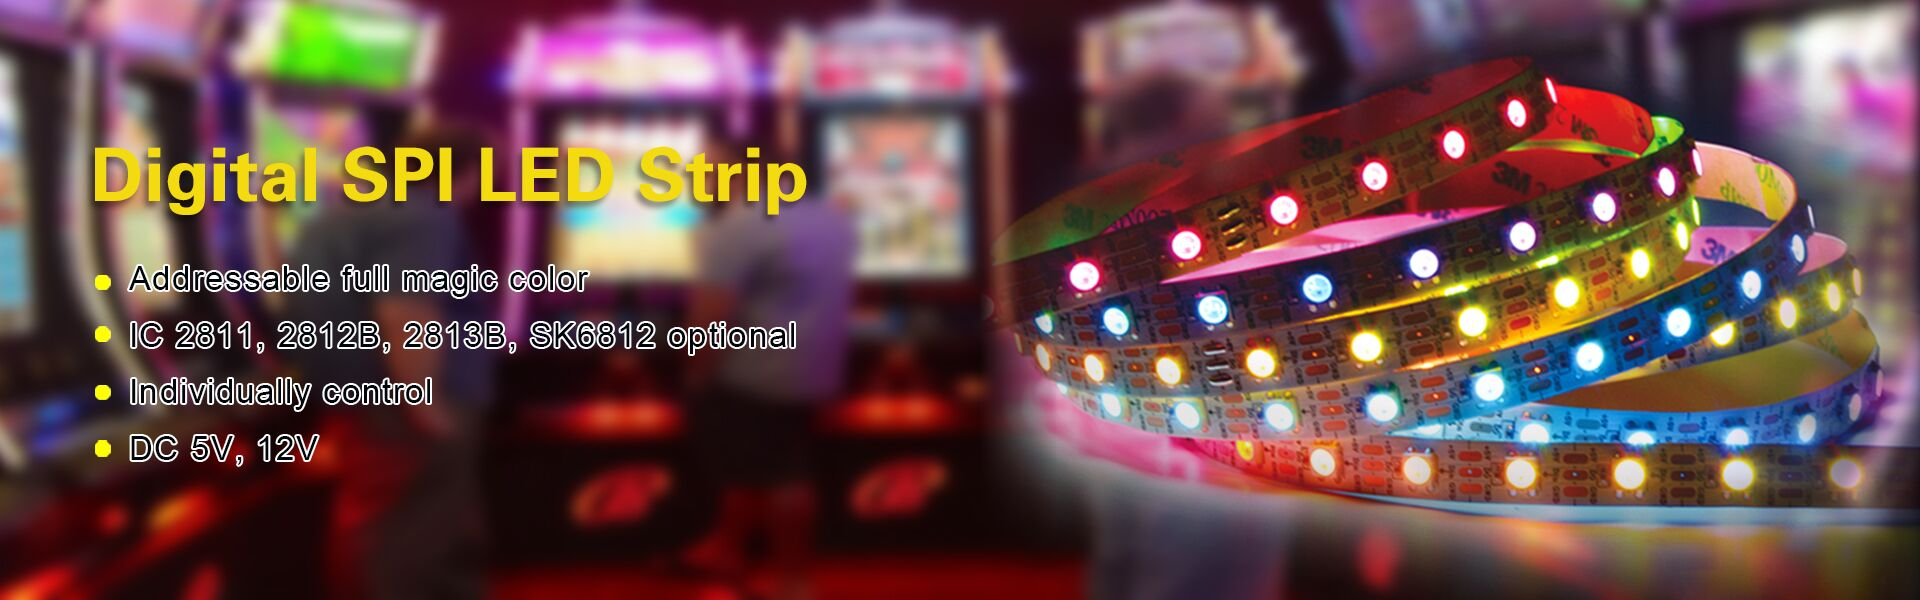 New product----Digital SPI LED Strip